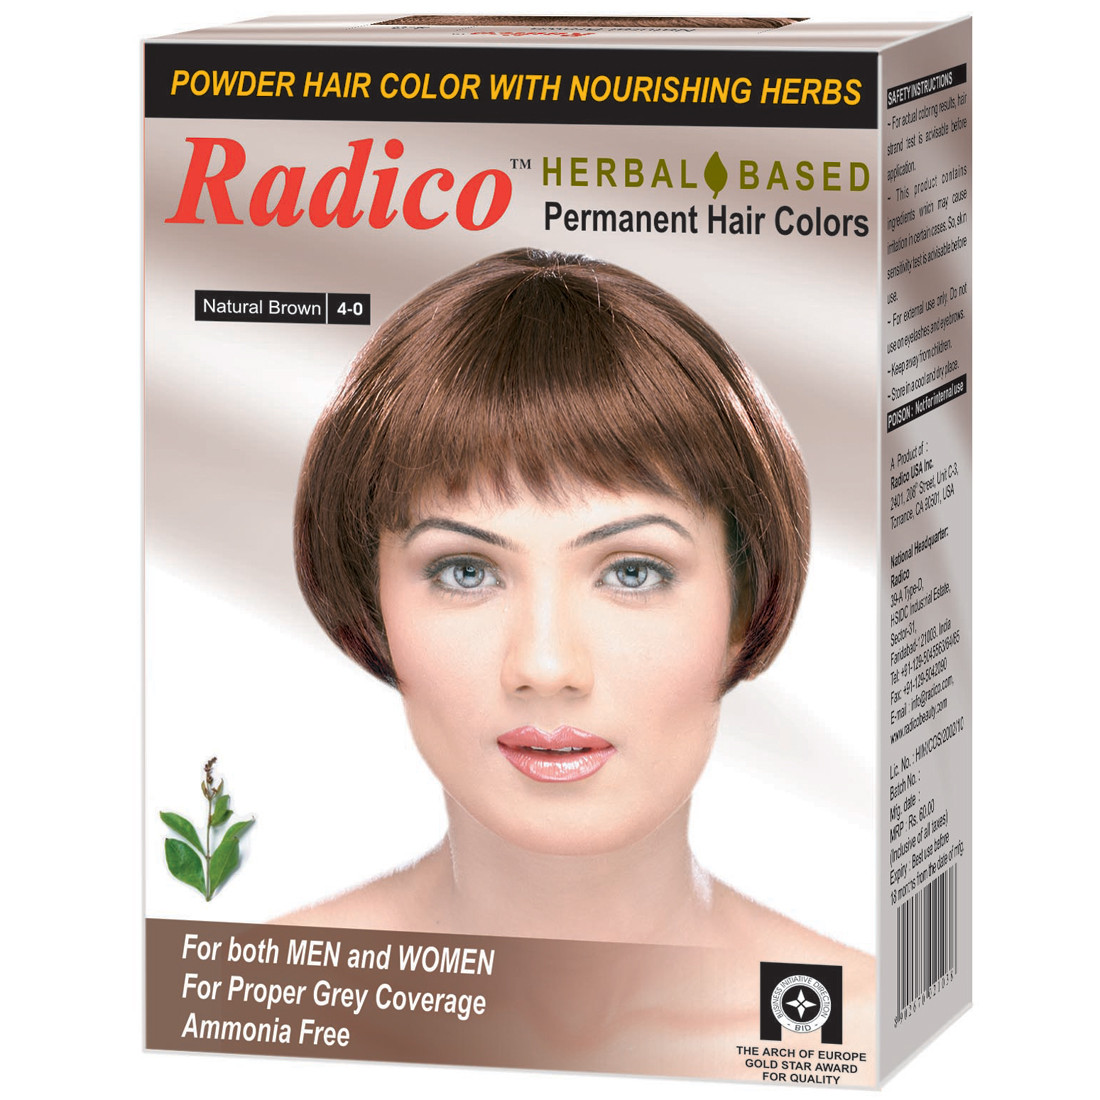 d7abfff41 Radico HERBAL Certified Permanent Hair Color Powder With Nourishing Herbs ( Natural Brown) Sale